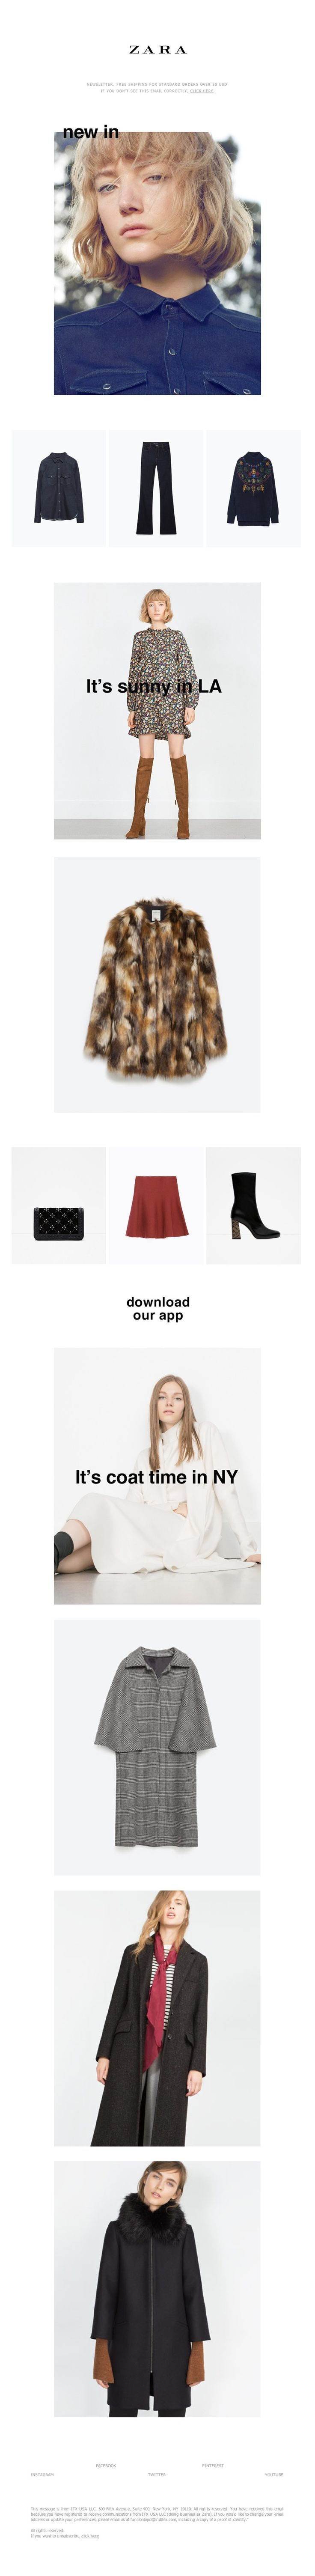 ZARA - Weekly | This is new in. Tuesday, October 13